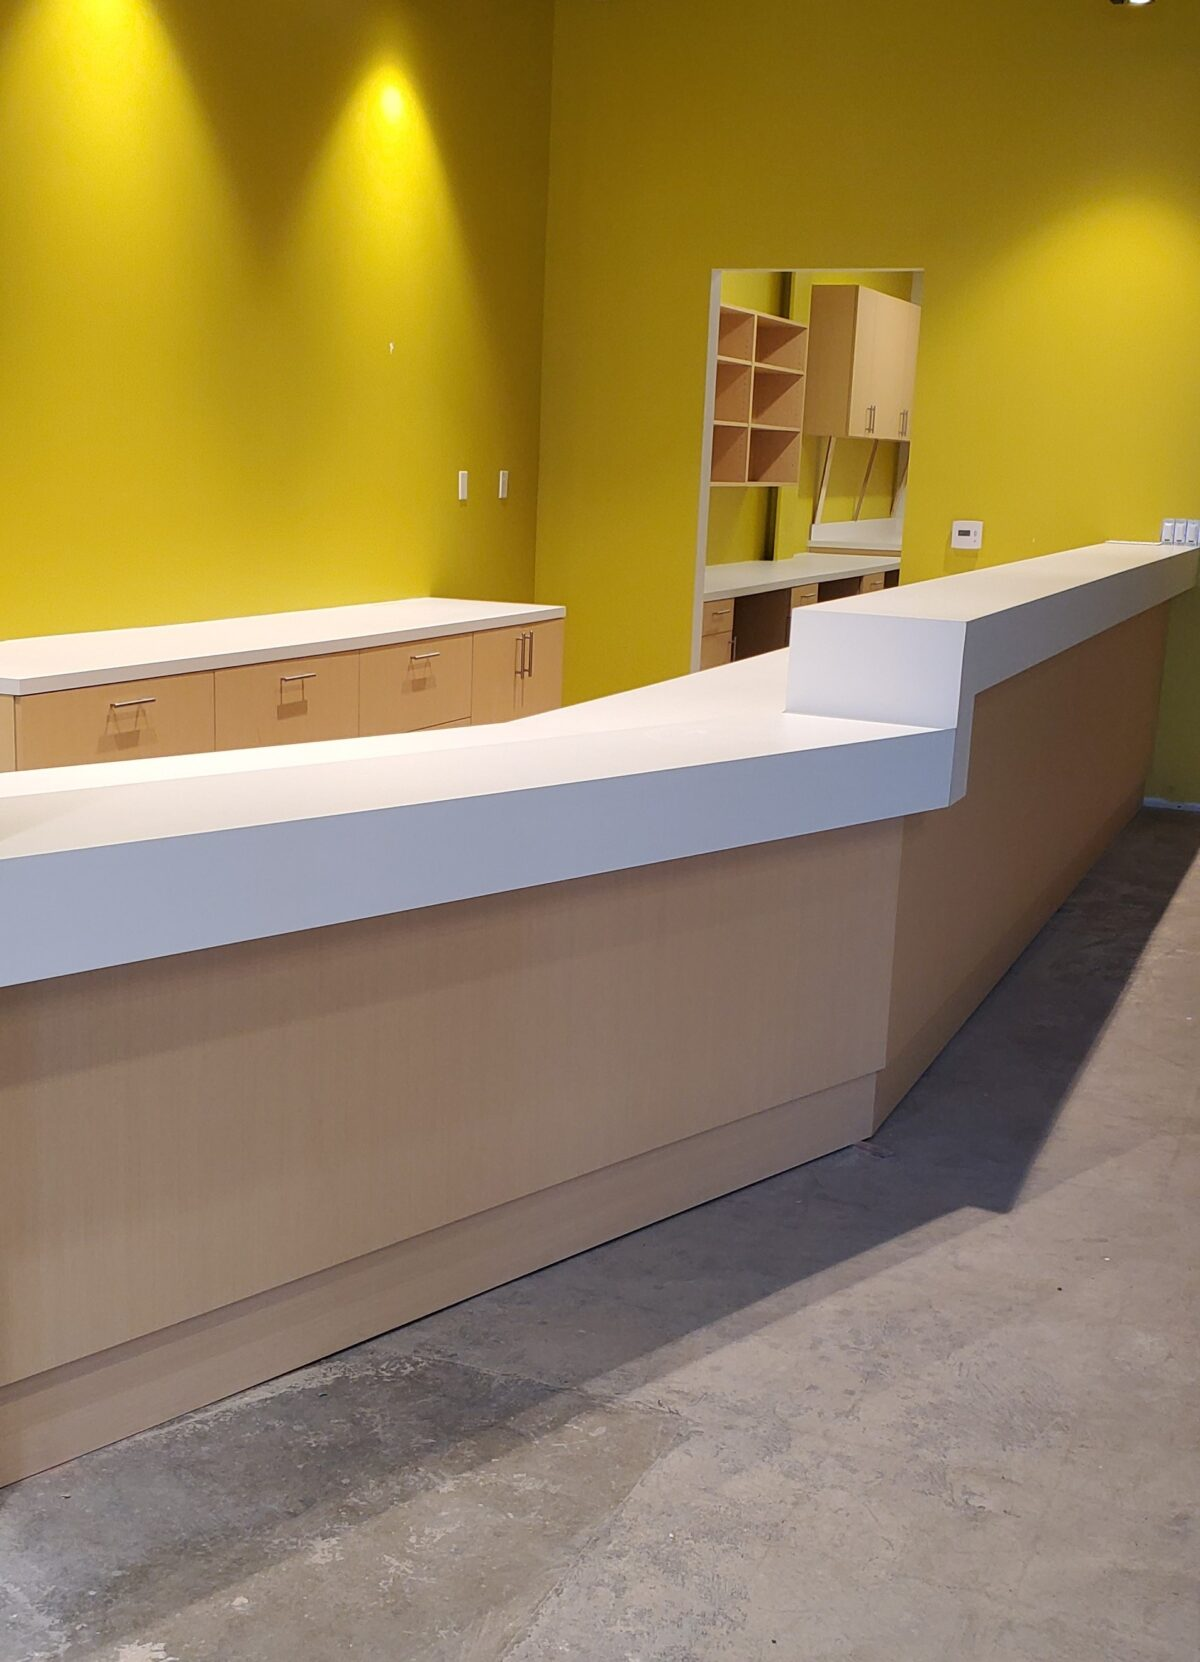 Cabinets, counter tops and shelving for South Center Family Health Center – Optic Eye Clinic